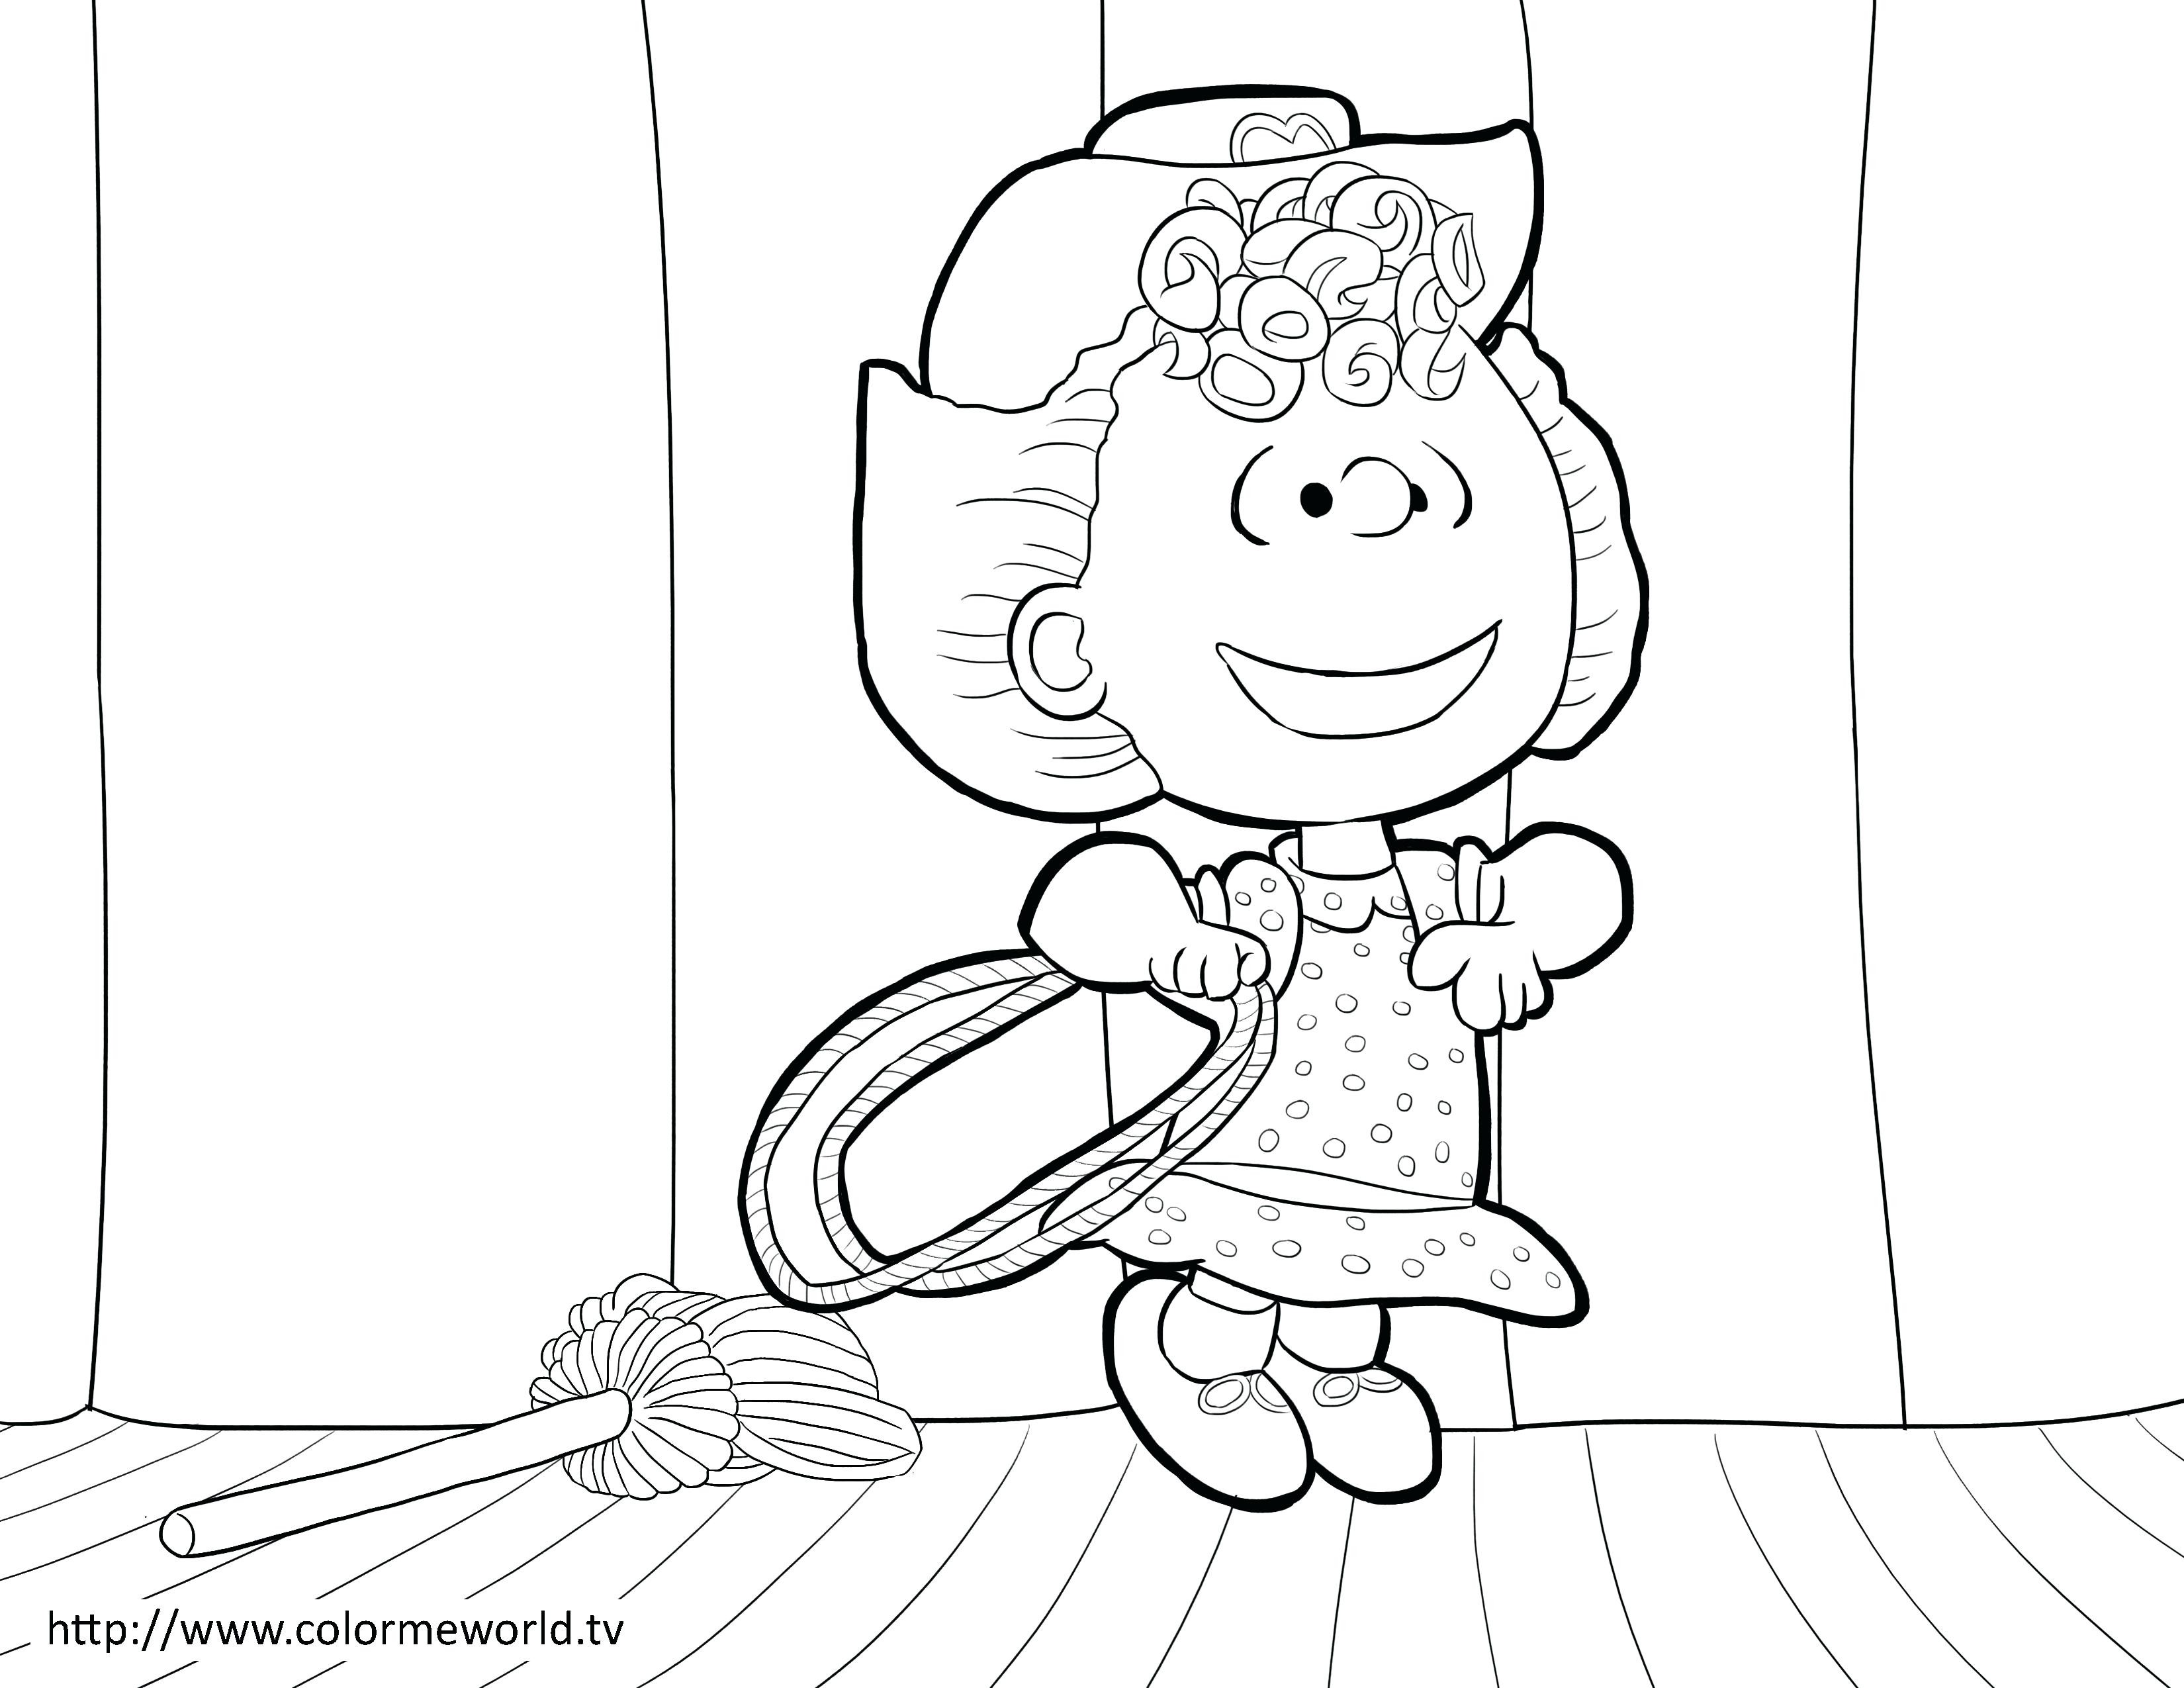 3300x2550 Peanuts Coloring Pages Lovely Snoopy Easter Coloring Pages Pic